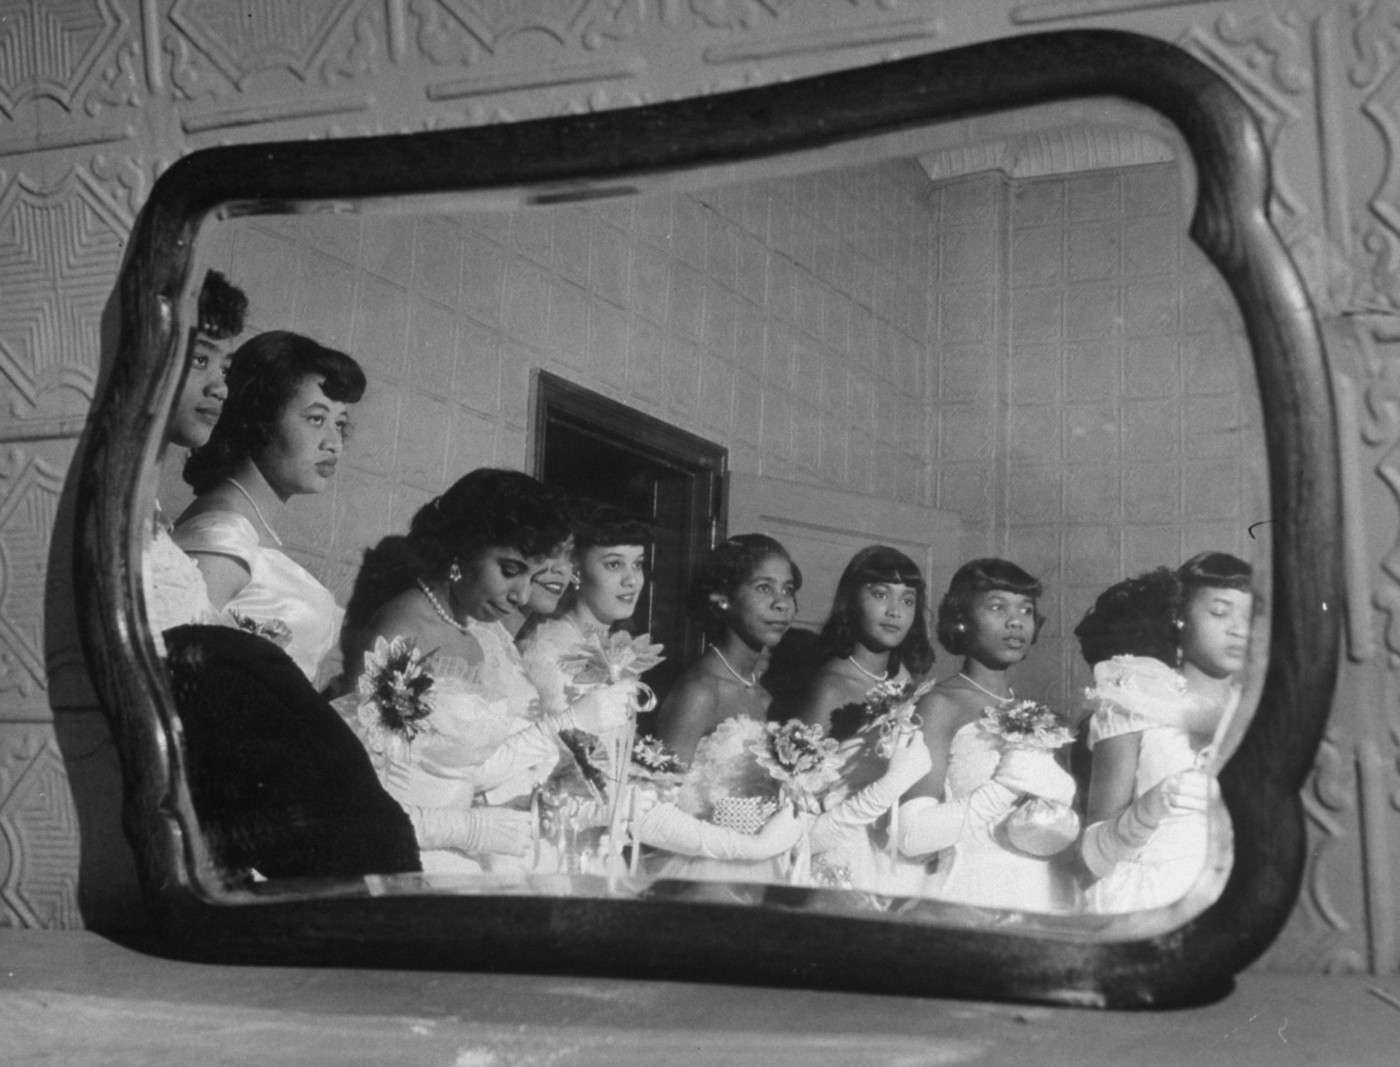 An archival photo of young African American women waiting to go downstairs for their debutante cotillion.